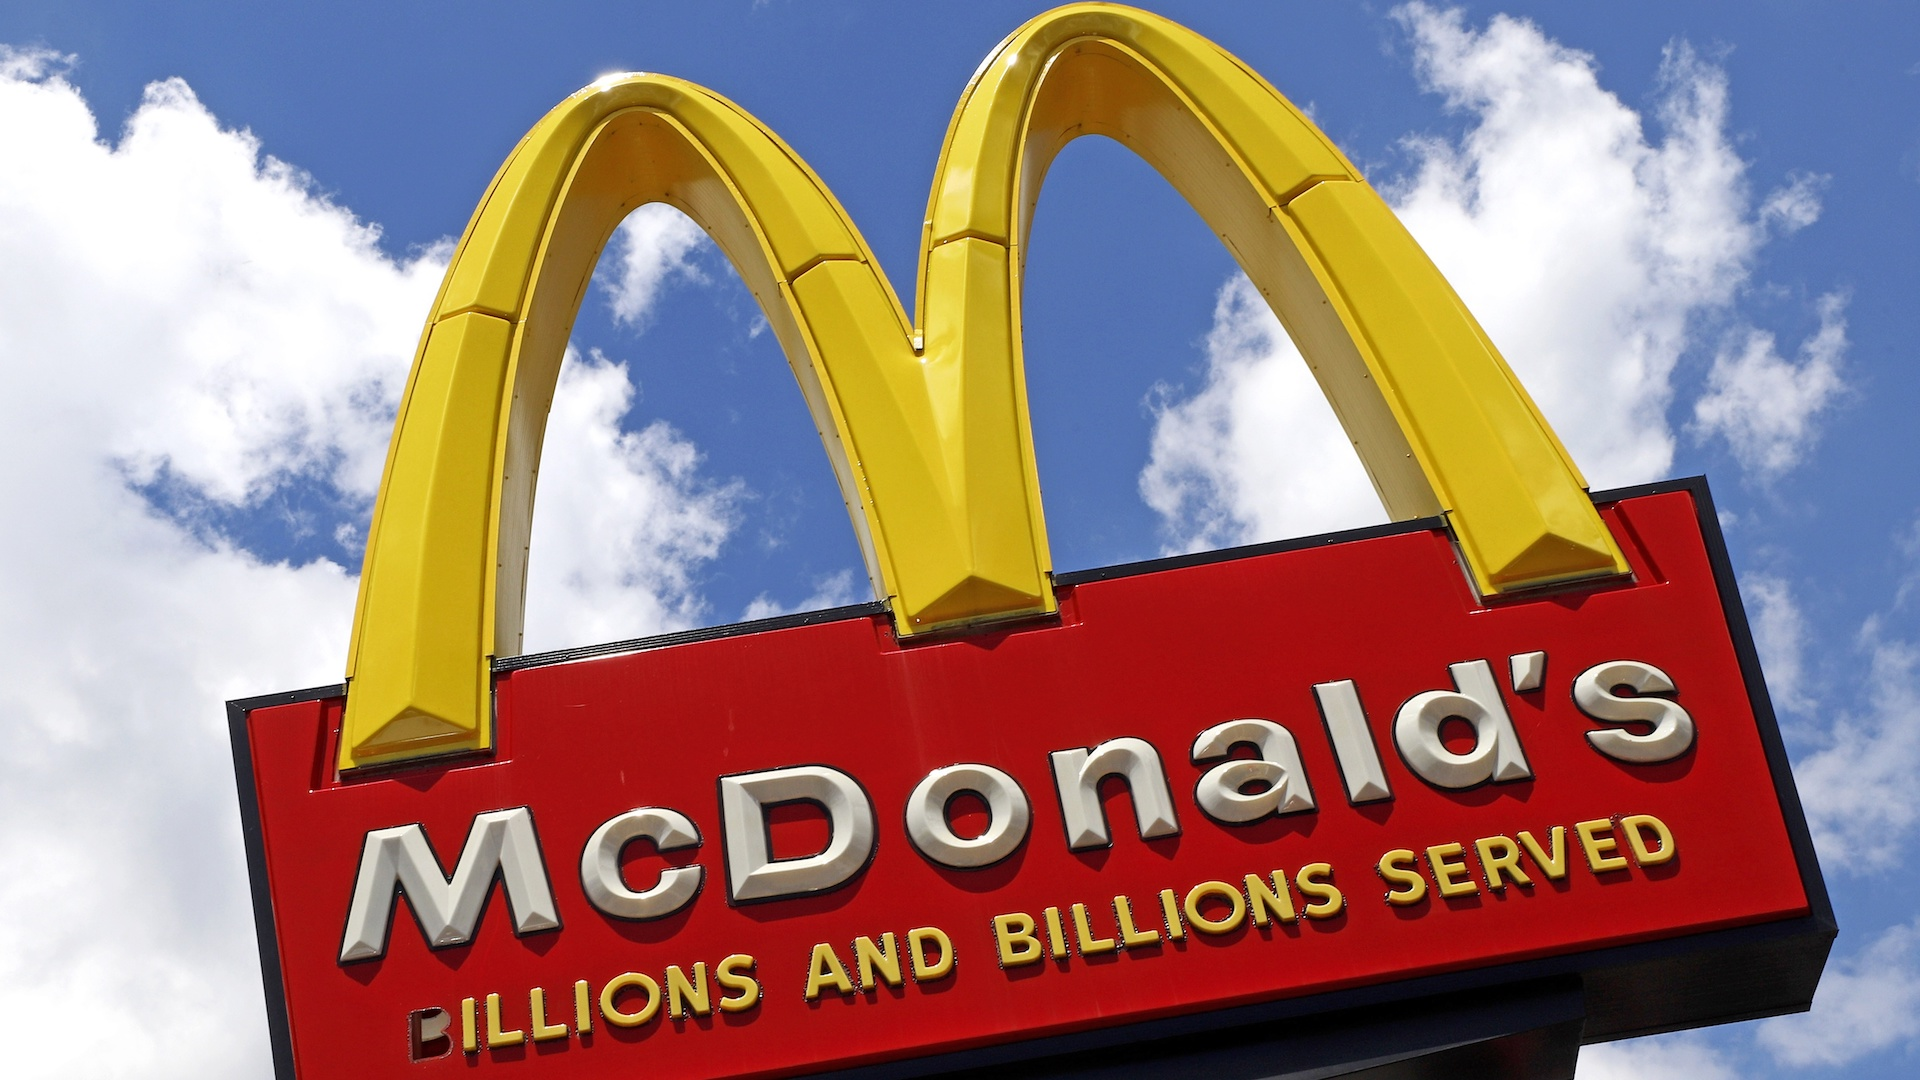 McDonald's Black franchisee owners file new discrimination lawsuit